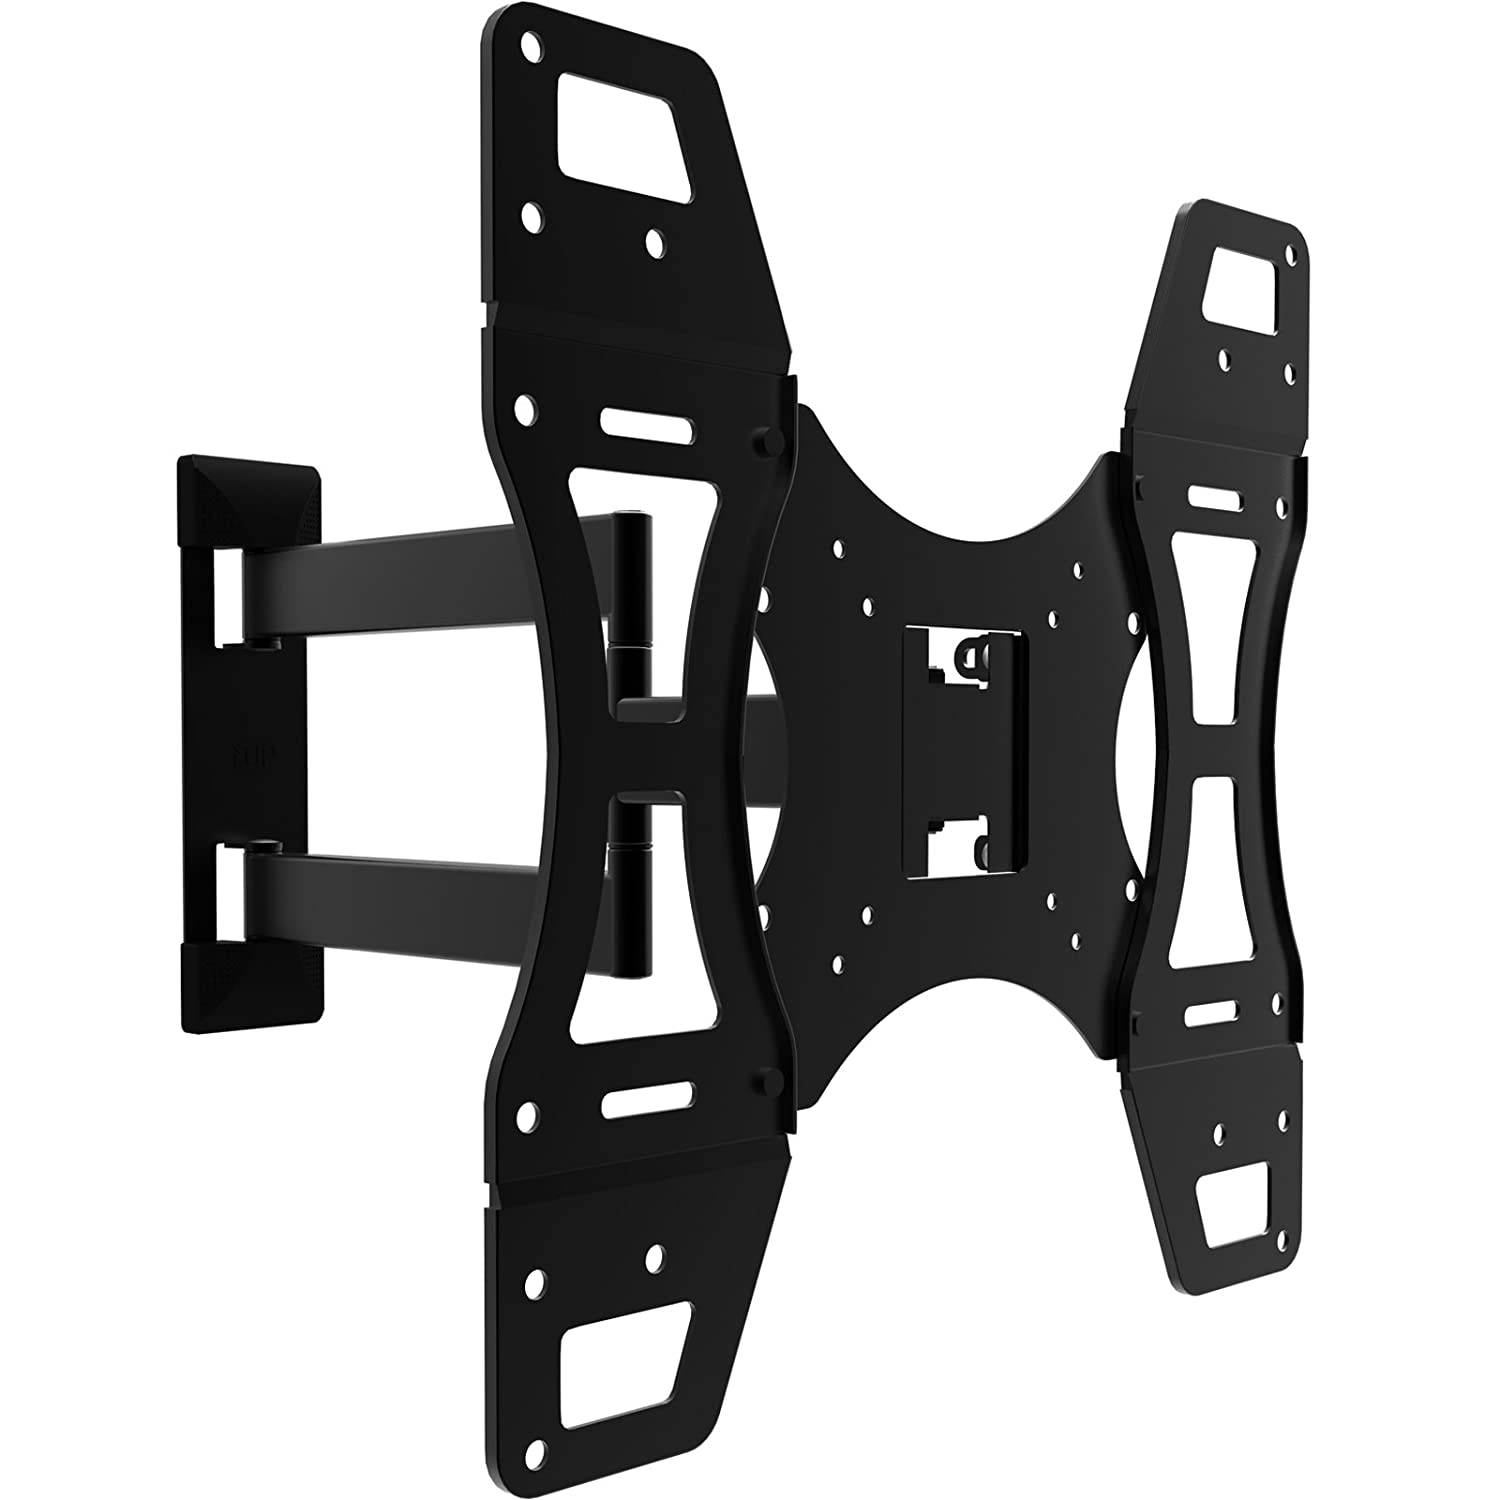 tv wall bracket for 17 55 inch tv fits samsung sony lg panasonic and many more by yousave accessories